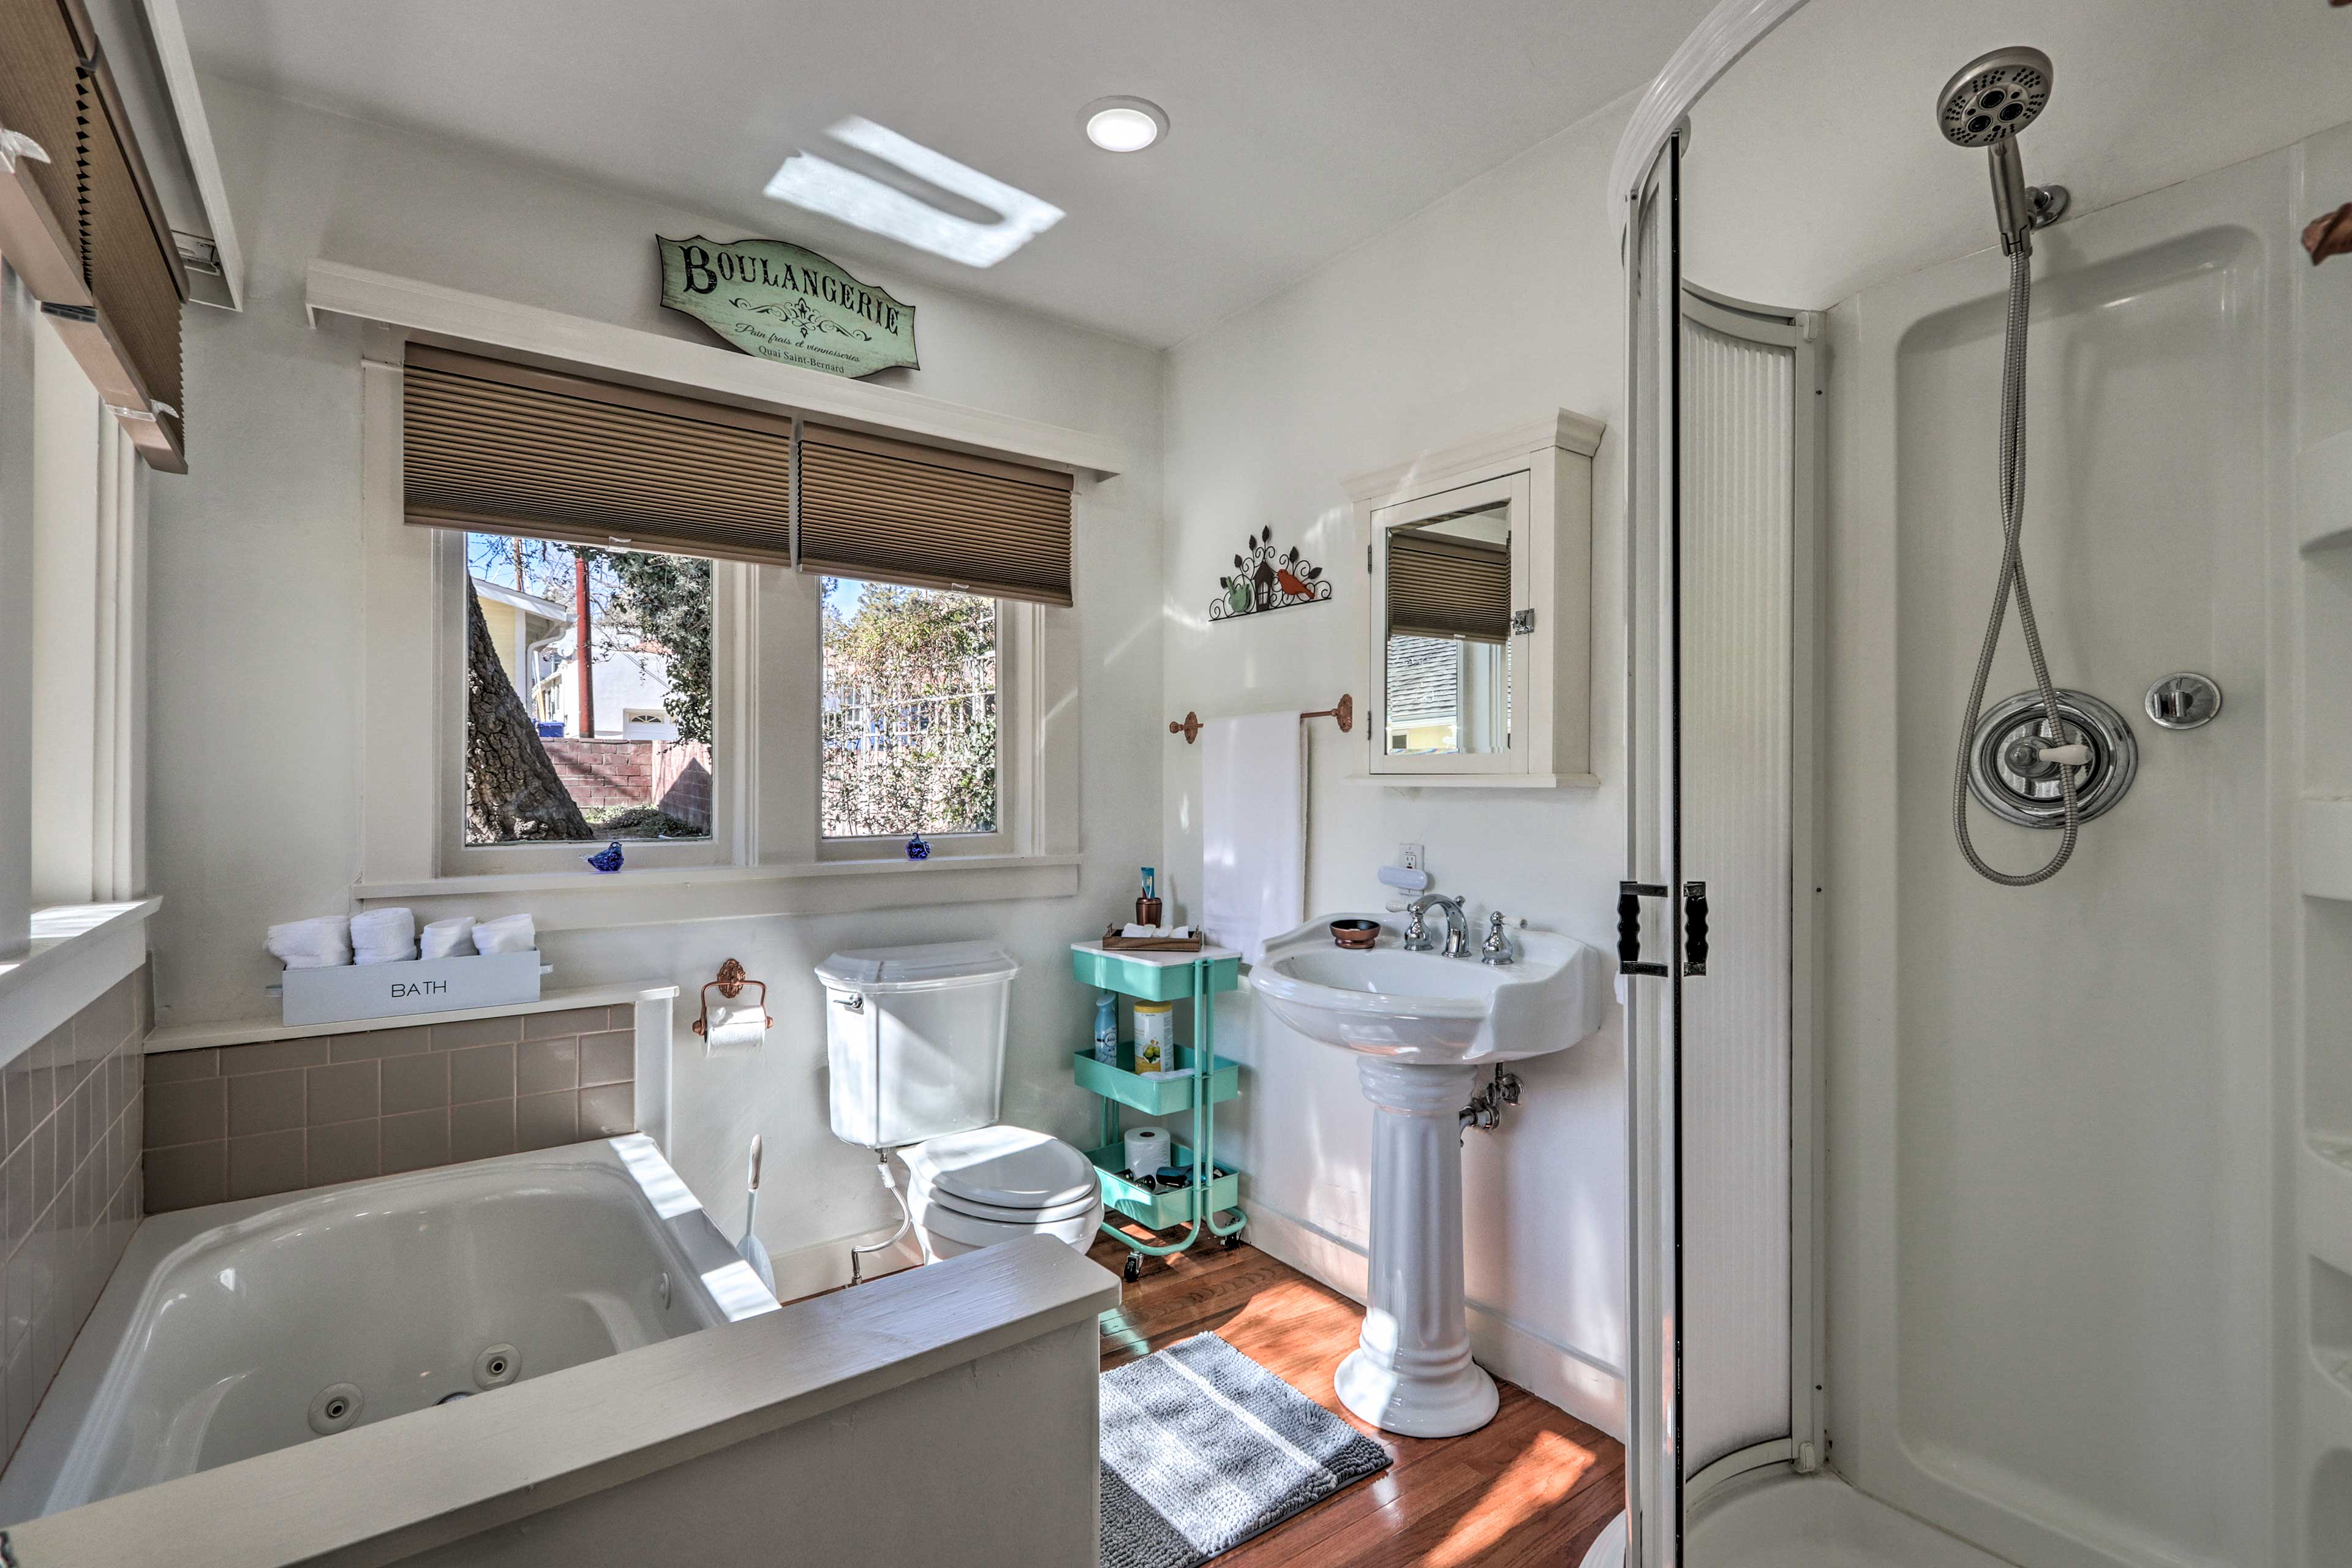 Rinse off the day in the stand-up shower or jetted tub.